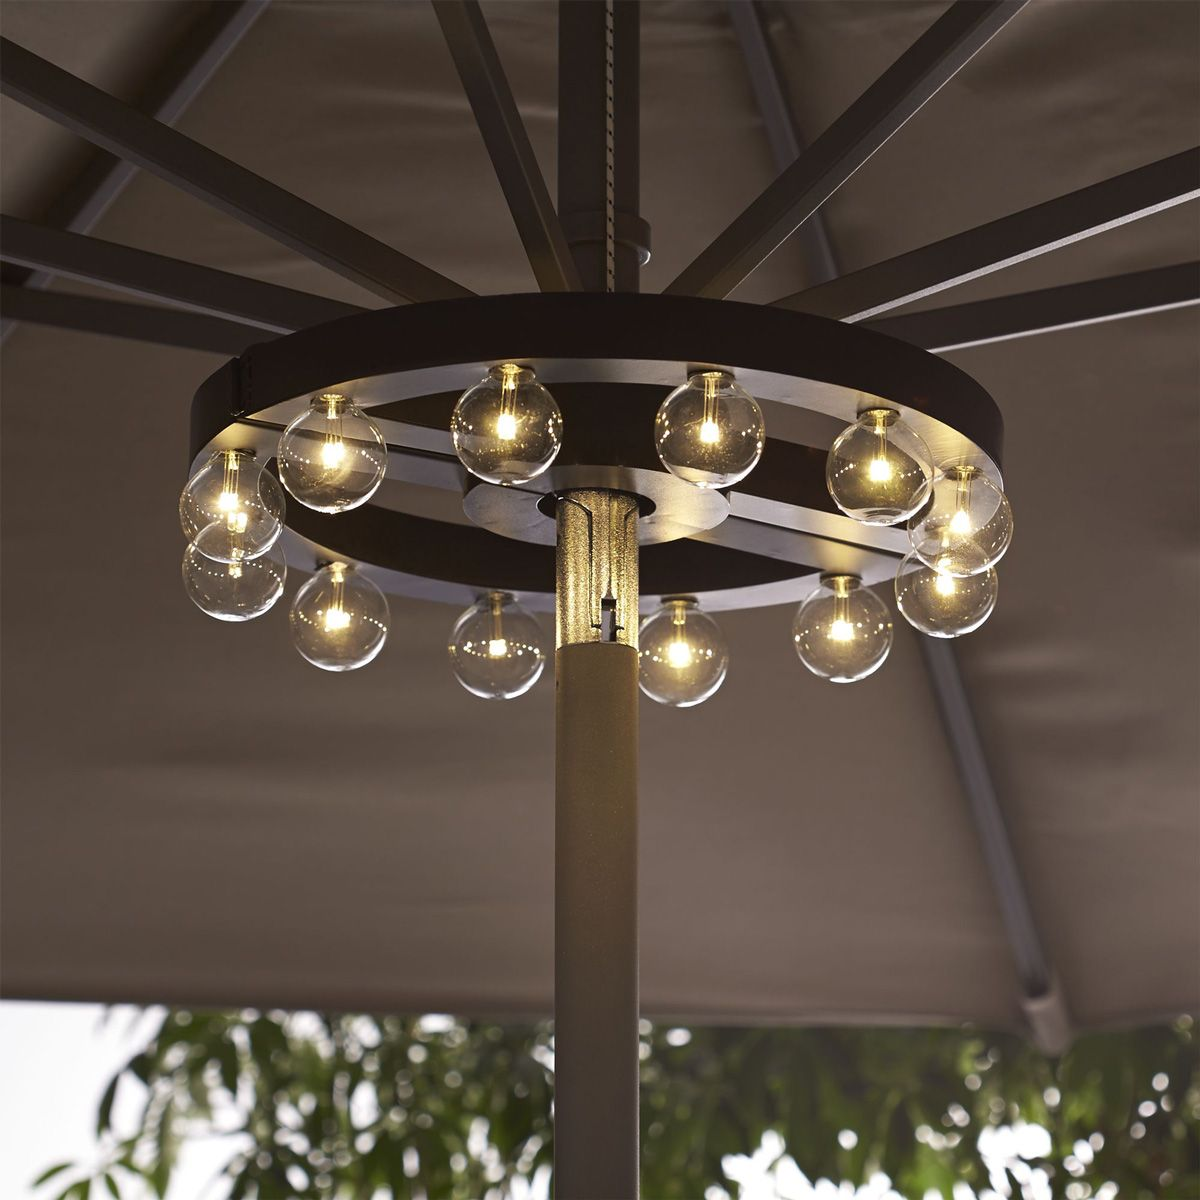 Solar Lights For Patio Umbrellas Inspiration Patio Umbrella Marquee Lights  Pinterest  Patio Umbrellas Marquee Design Ideas